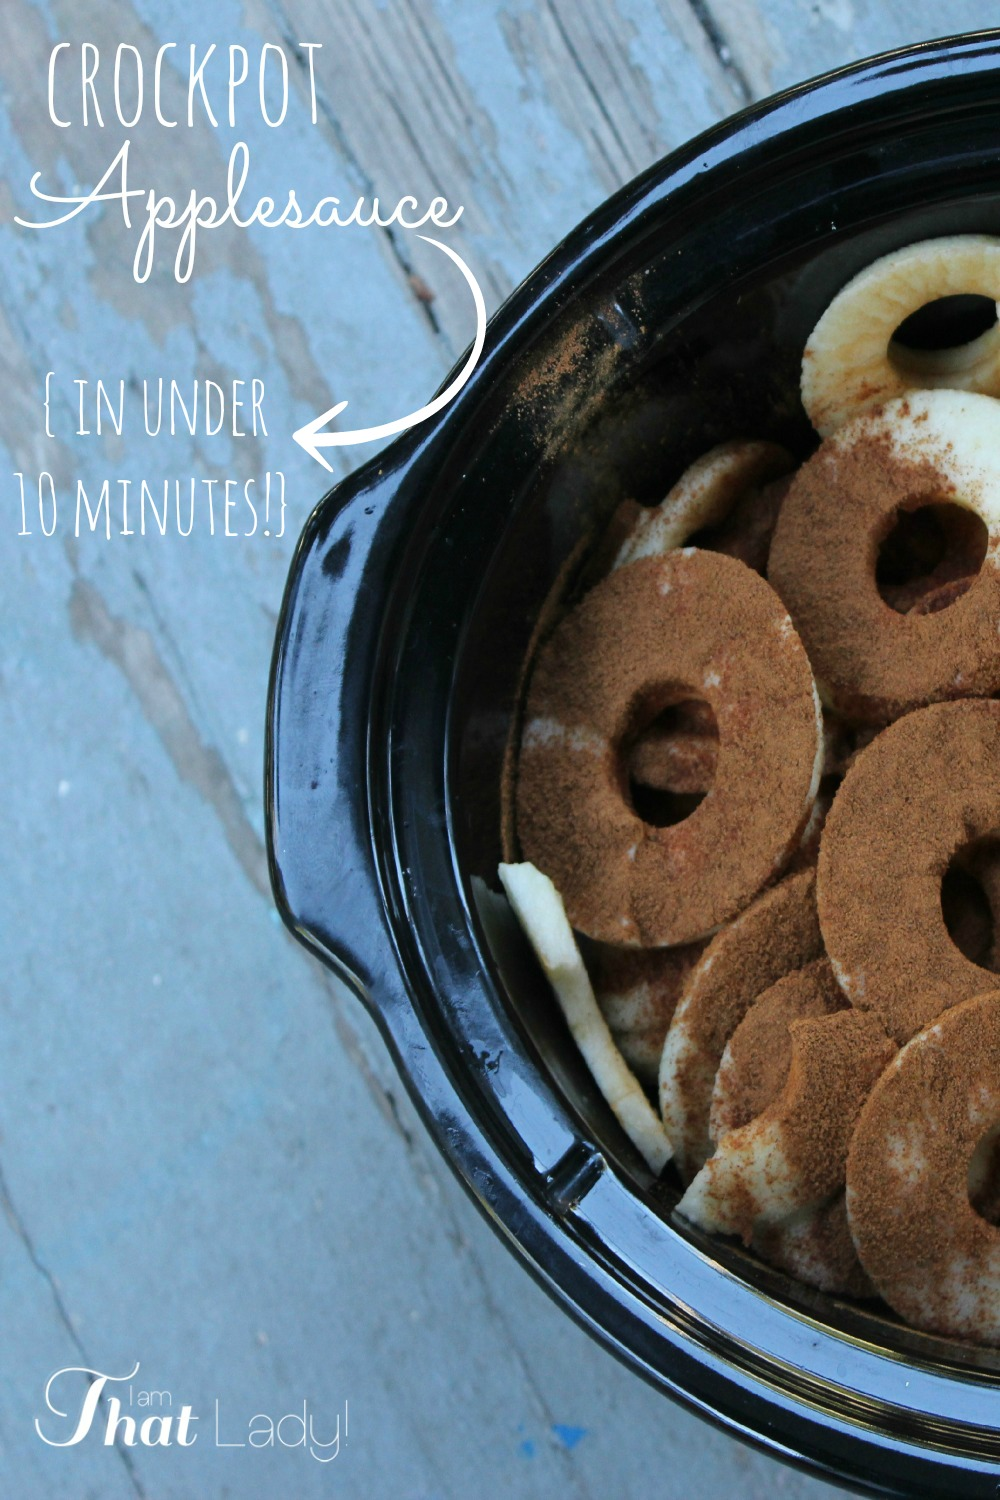 Are you wanting to make applesauce but you don't want to slave over a hot stove all day? Why not make this easy 10 minute crockpot applesauce.  It is so easy to make and you don't have to spend hours doing it! Head on over and take a peak!